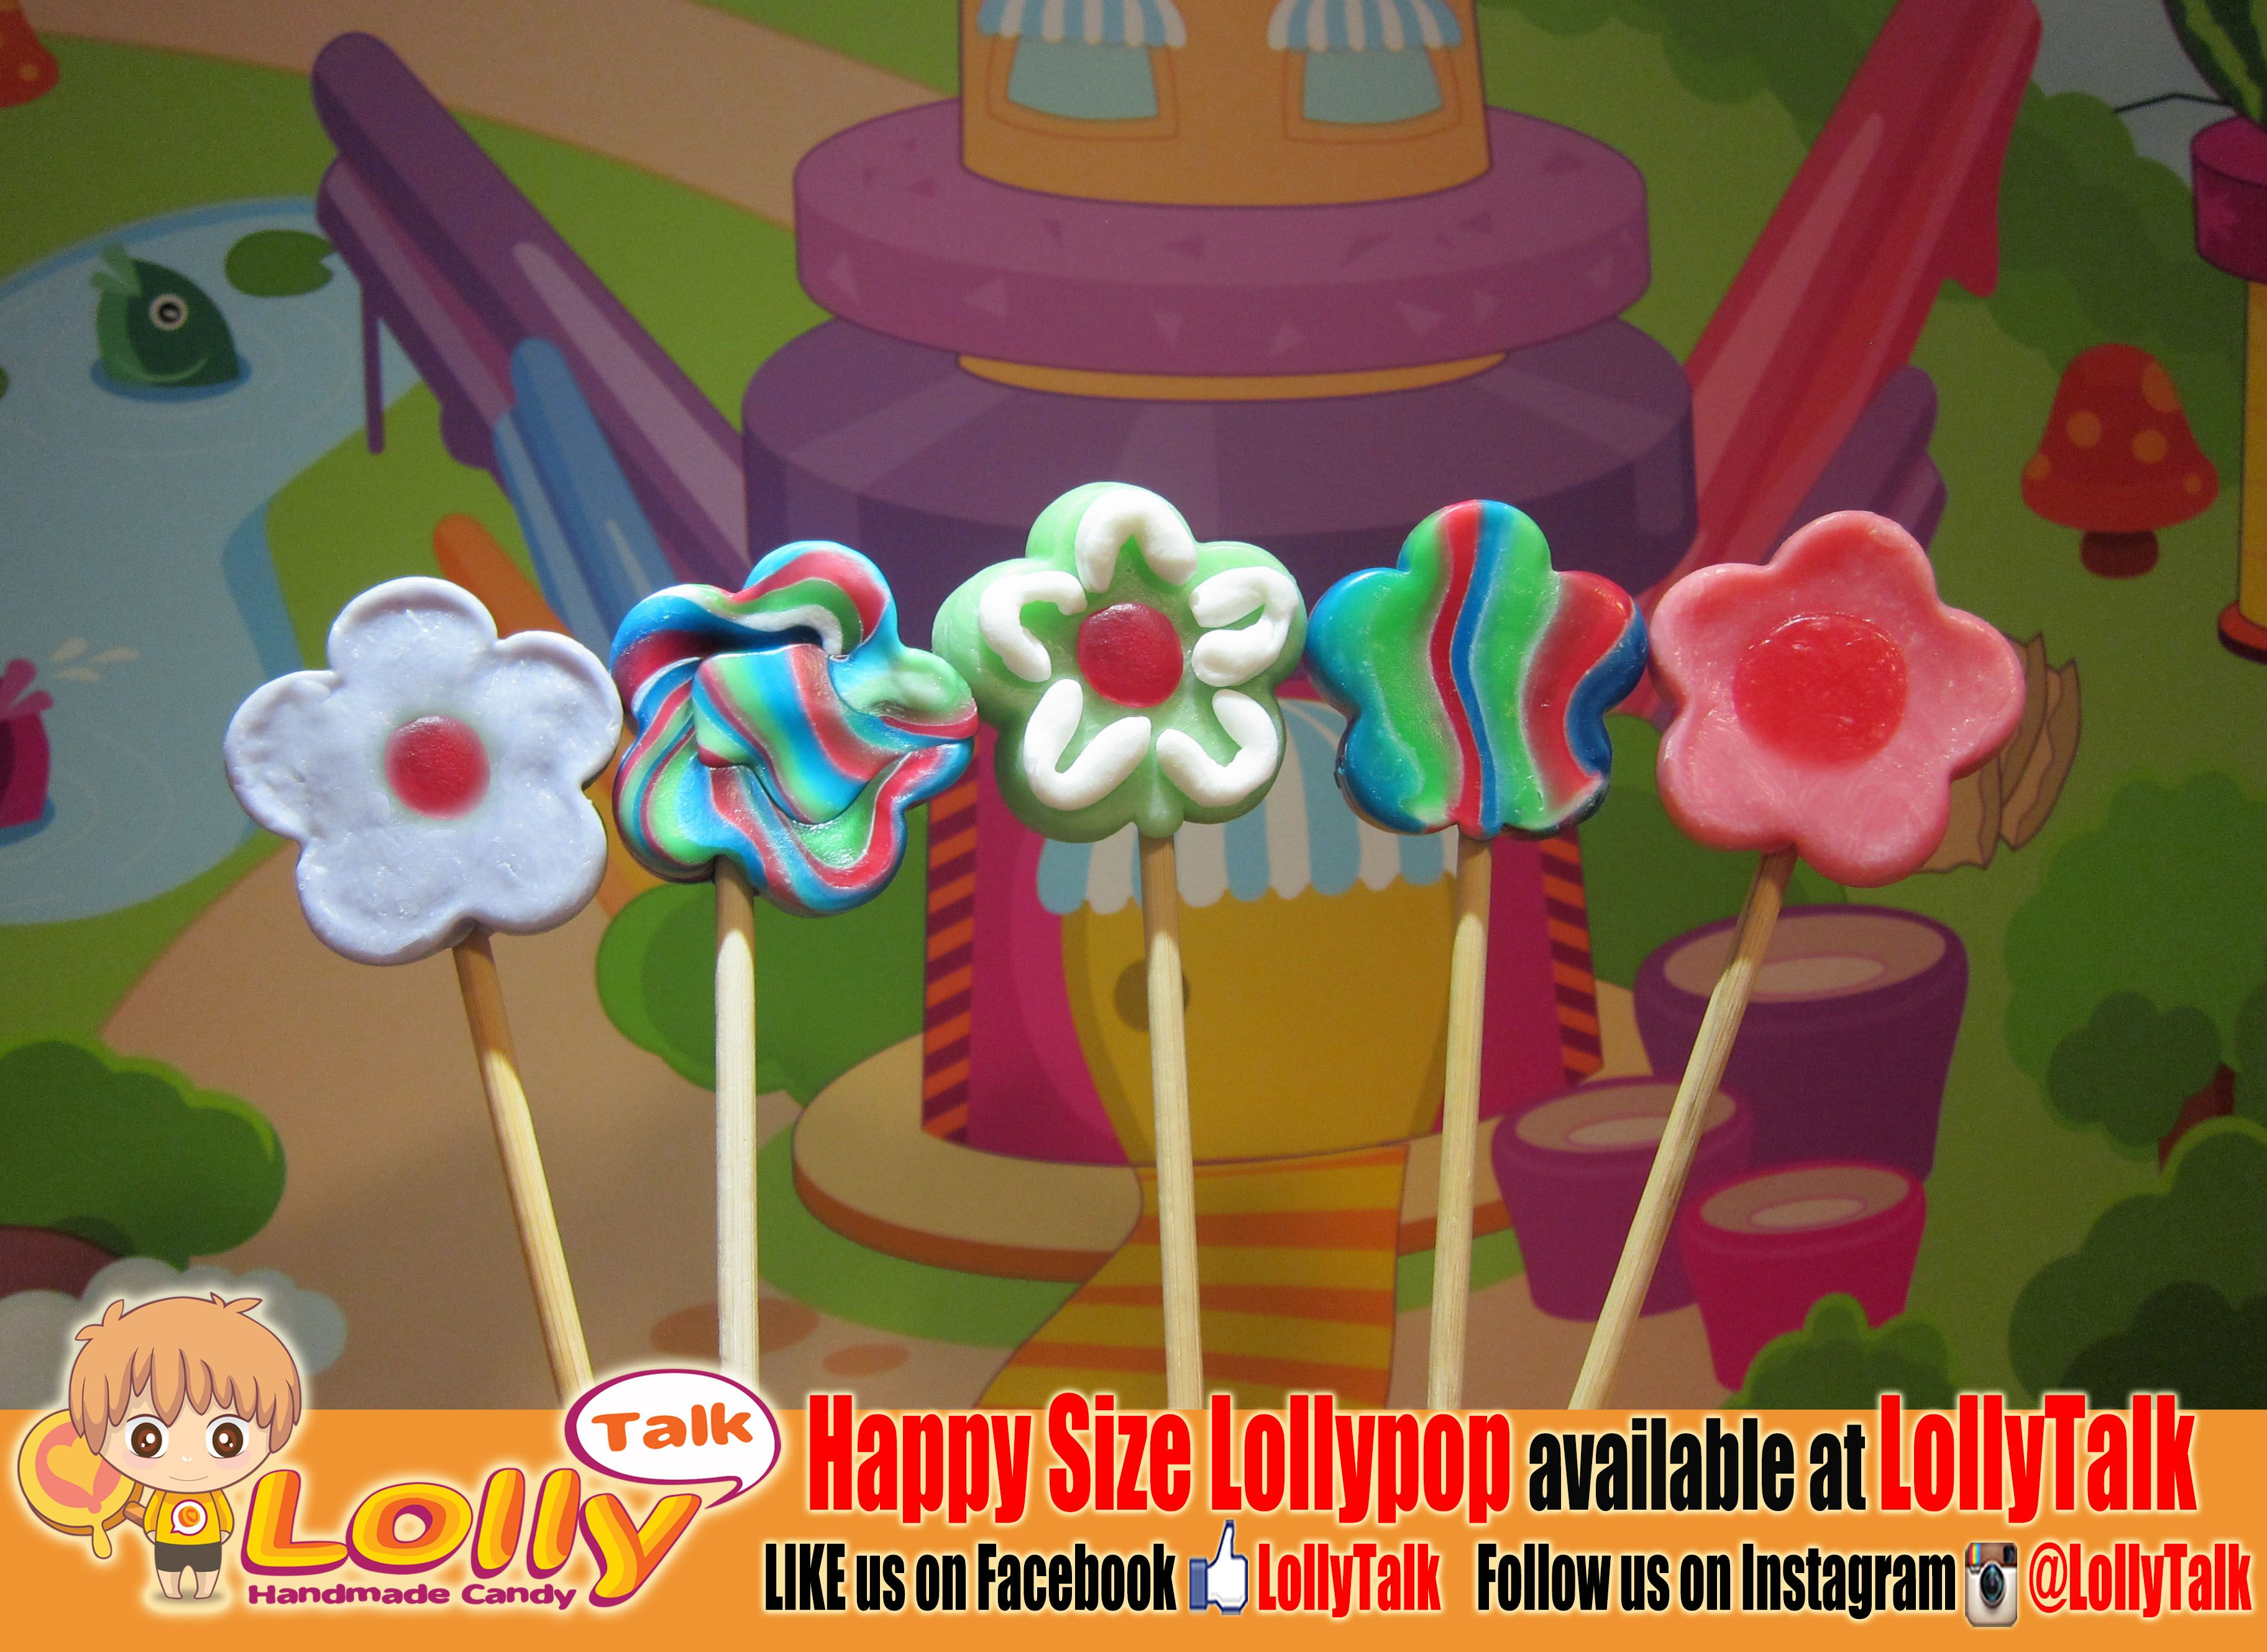 May Flower lollypop at LollyTalk!